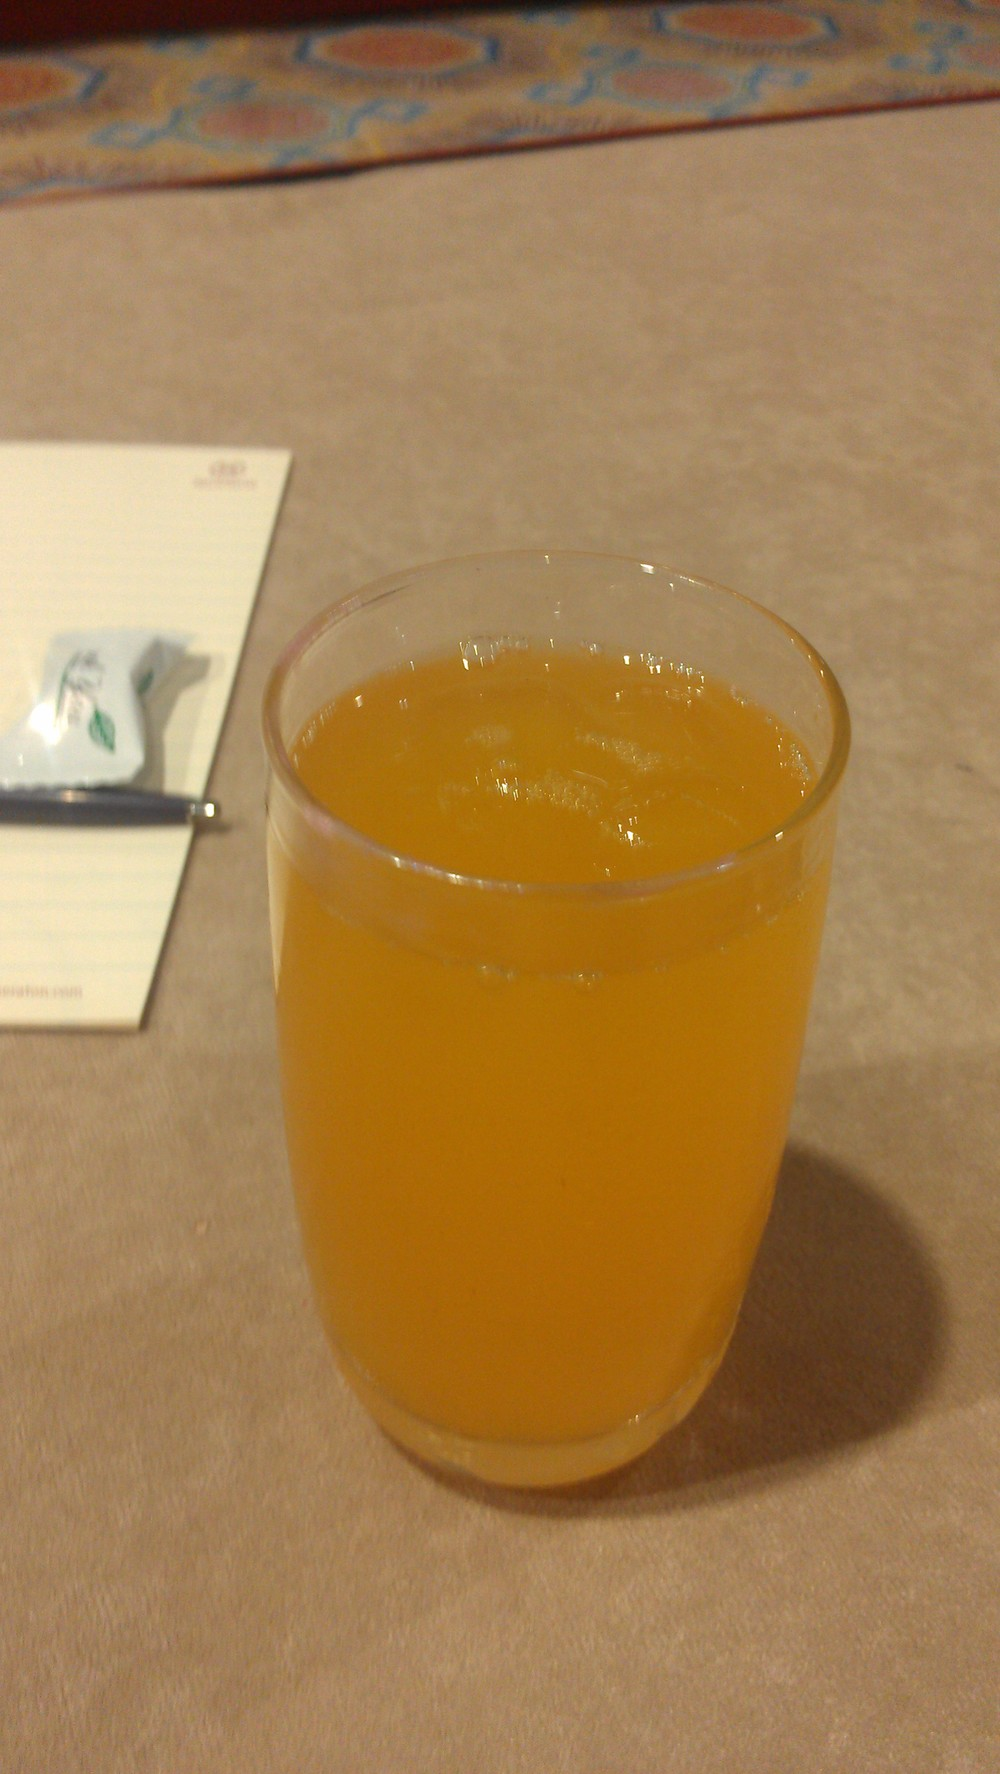 Fresh passion fruit juice with breakfast. That was new!